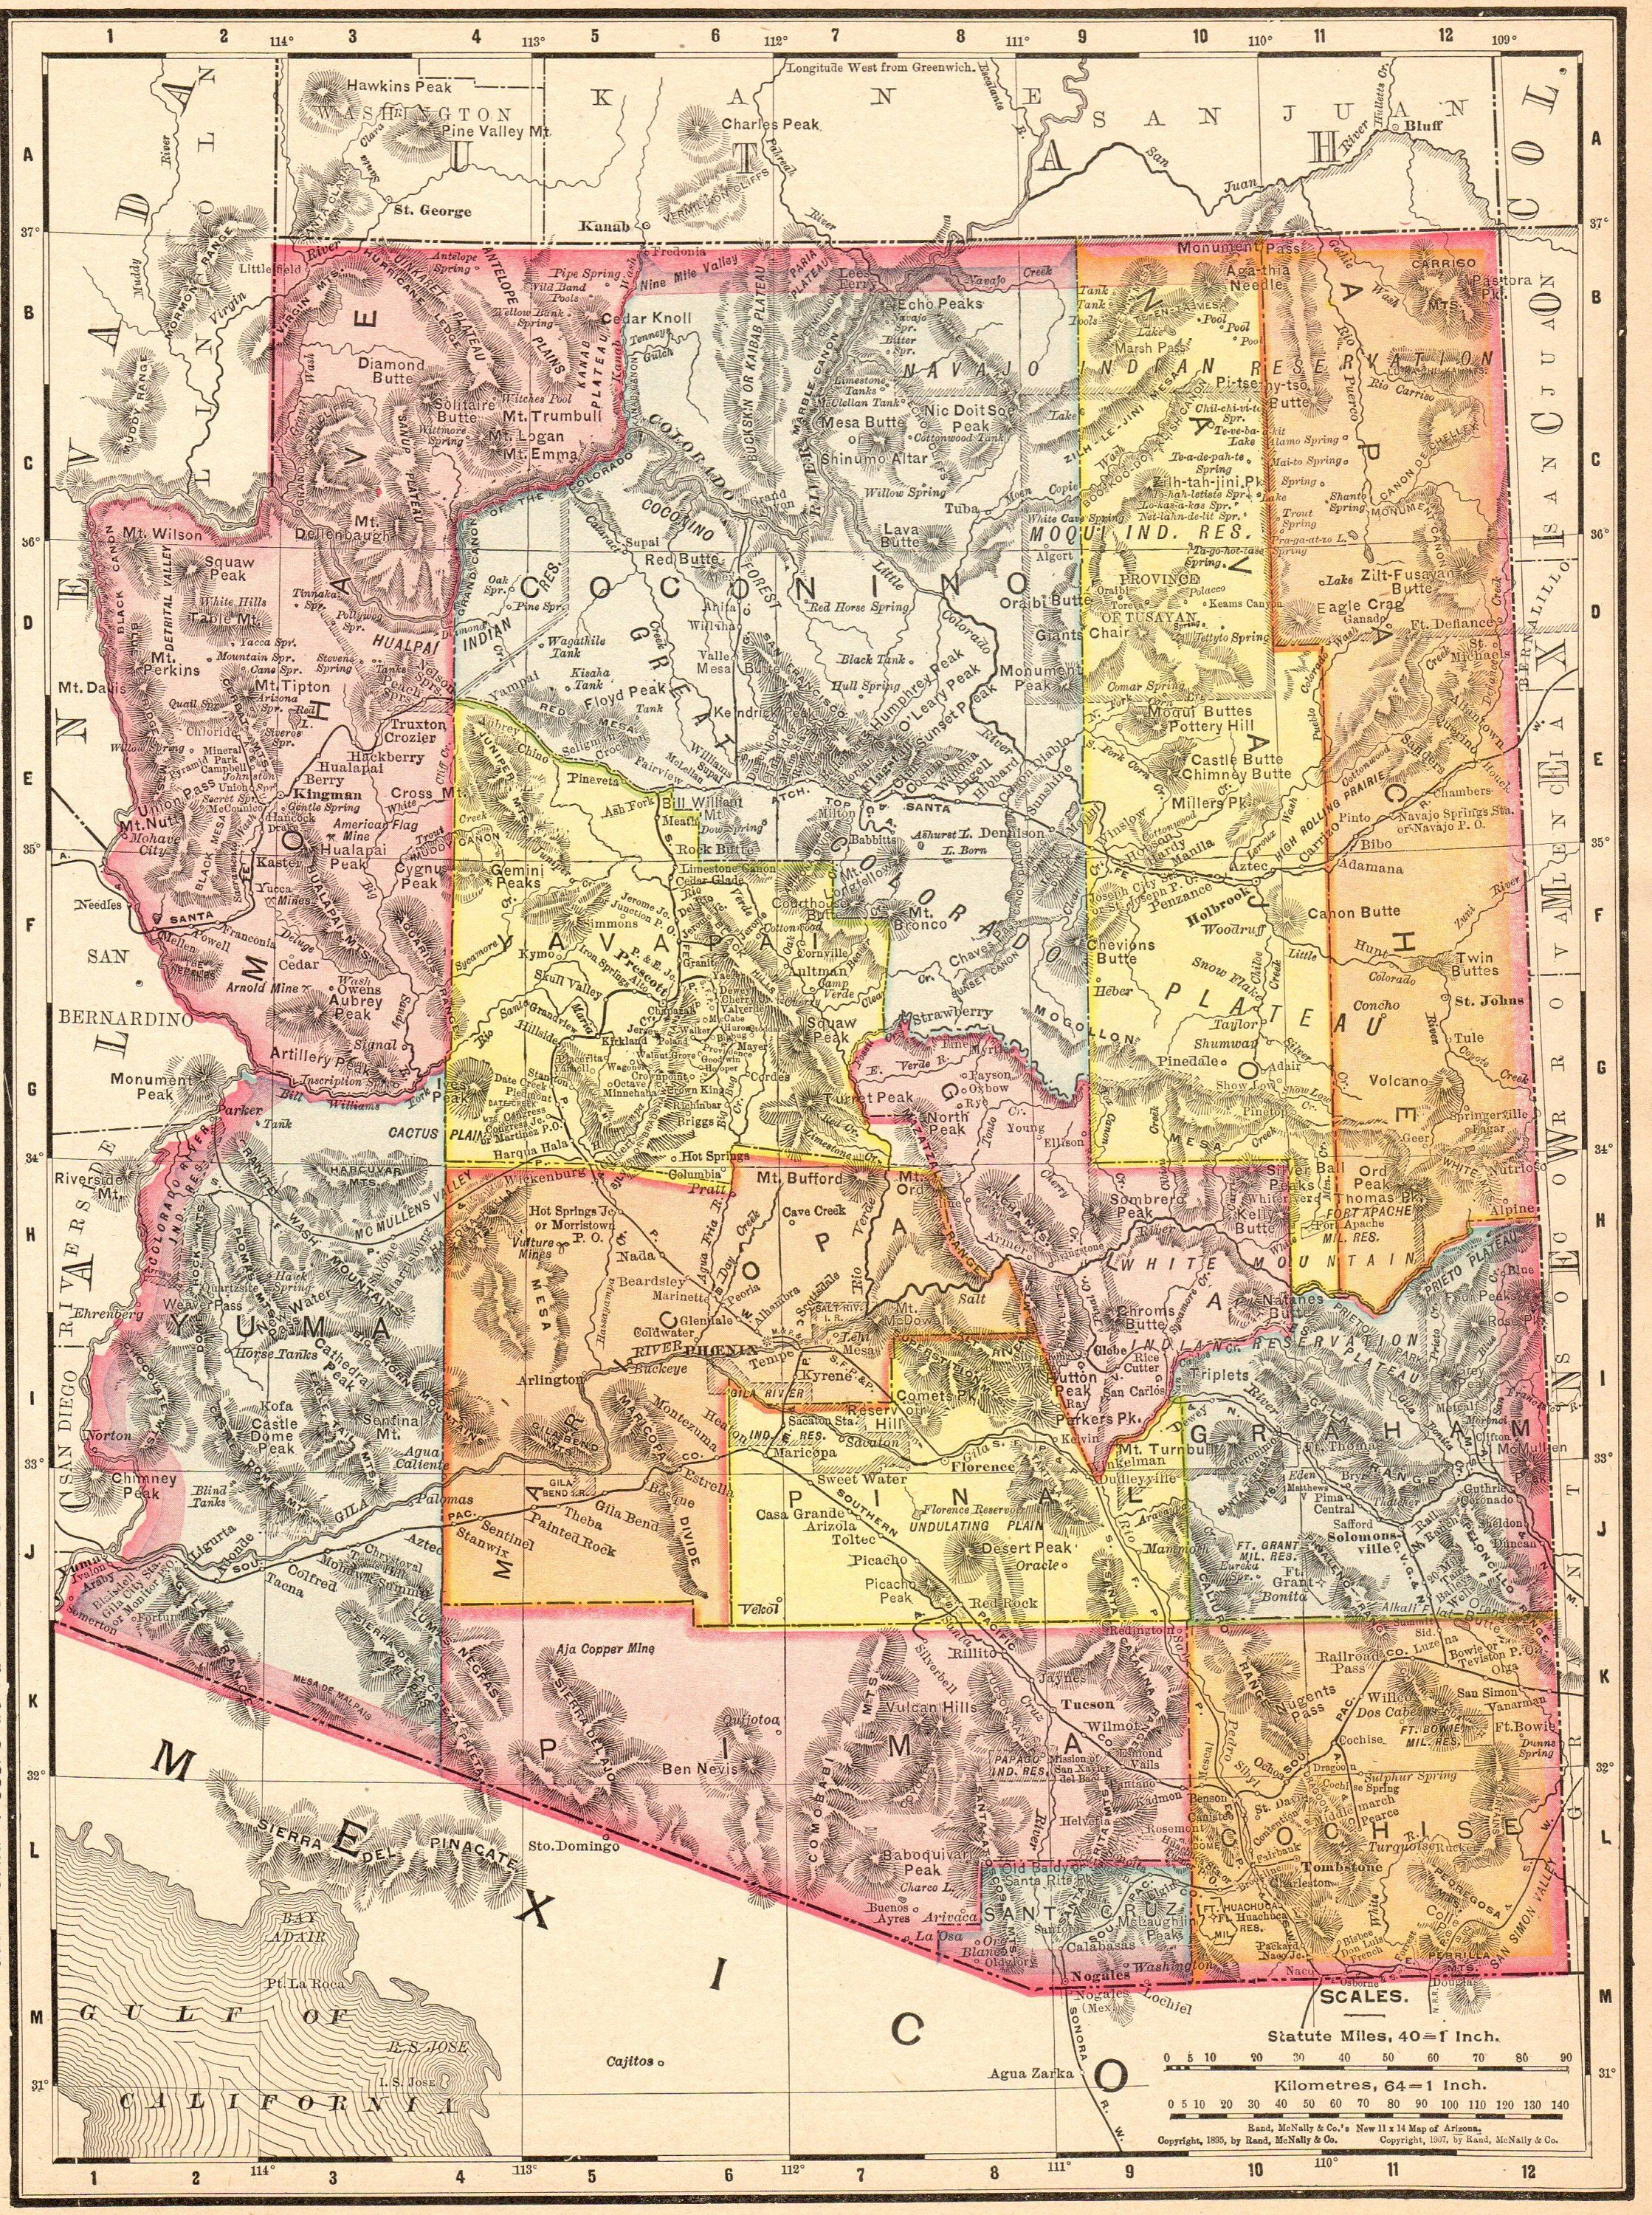 1911 Antique Arizona State Map Vintage Map Of Arizona Gallery Etsy Arizona Map Arizona State Map Art Gallery Wall